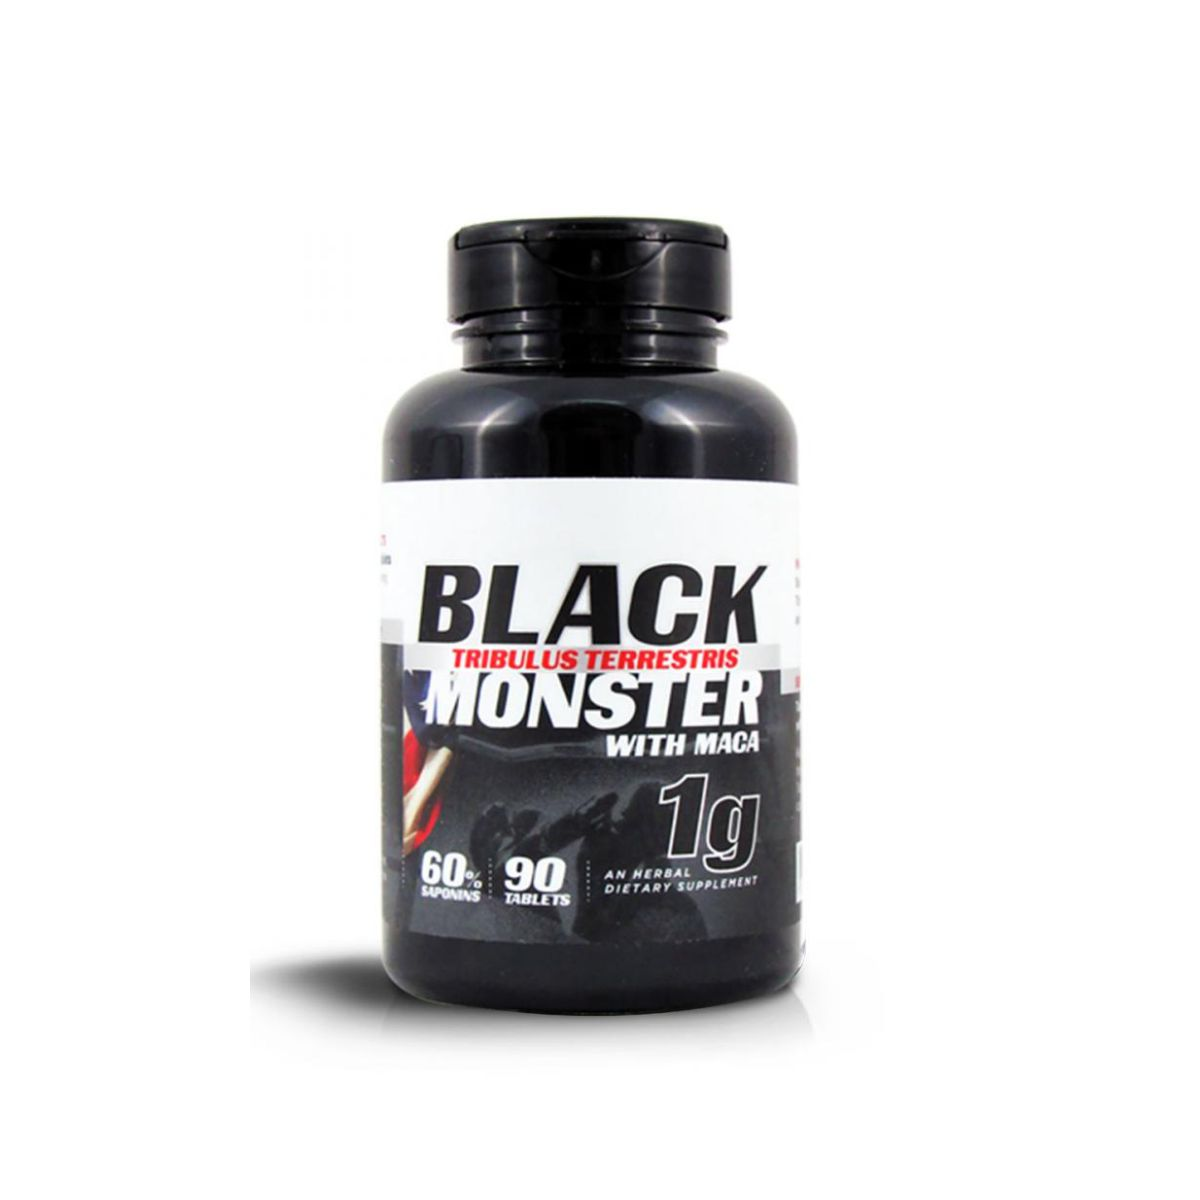 Tribulus Terrestris 90 Tabs Black Monster - Super Nutrition